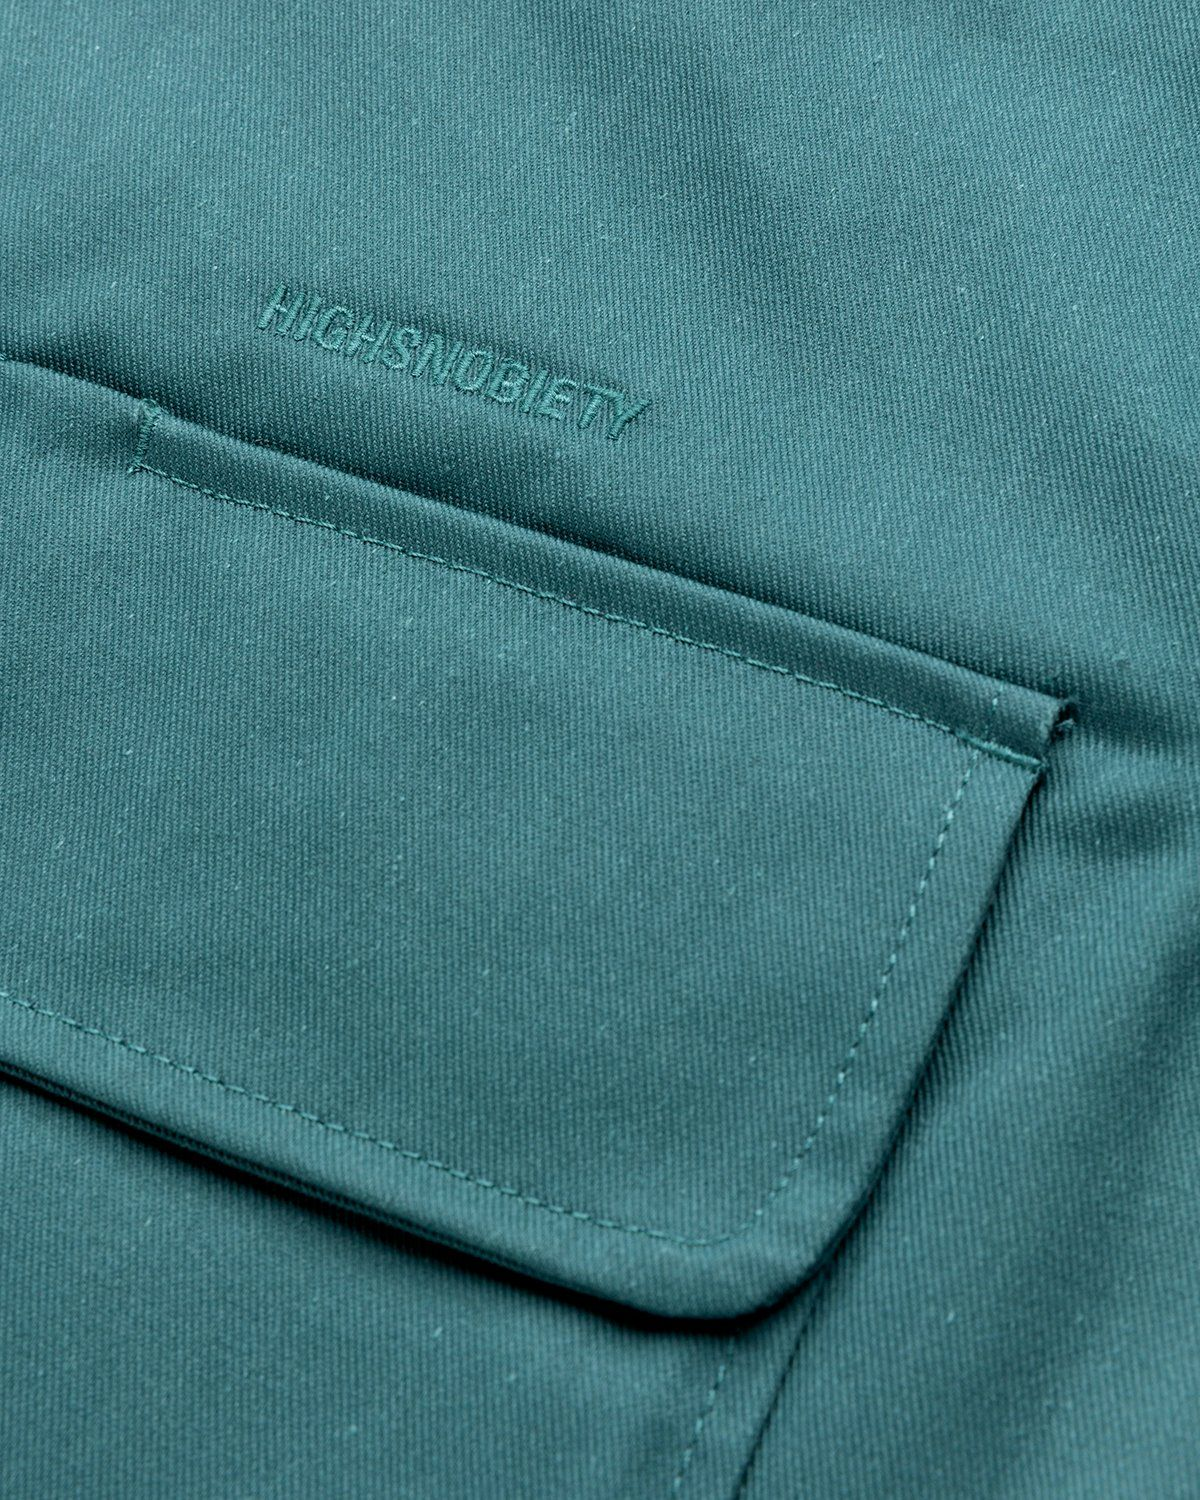 Highsnobiety x Dickies – Service Shirt Lincoln Green - Image 4